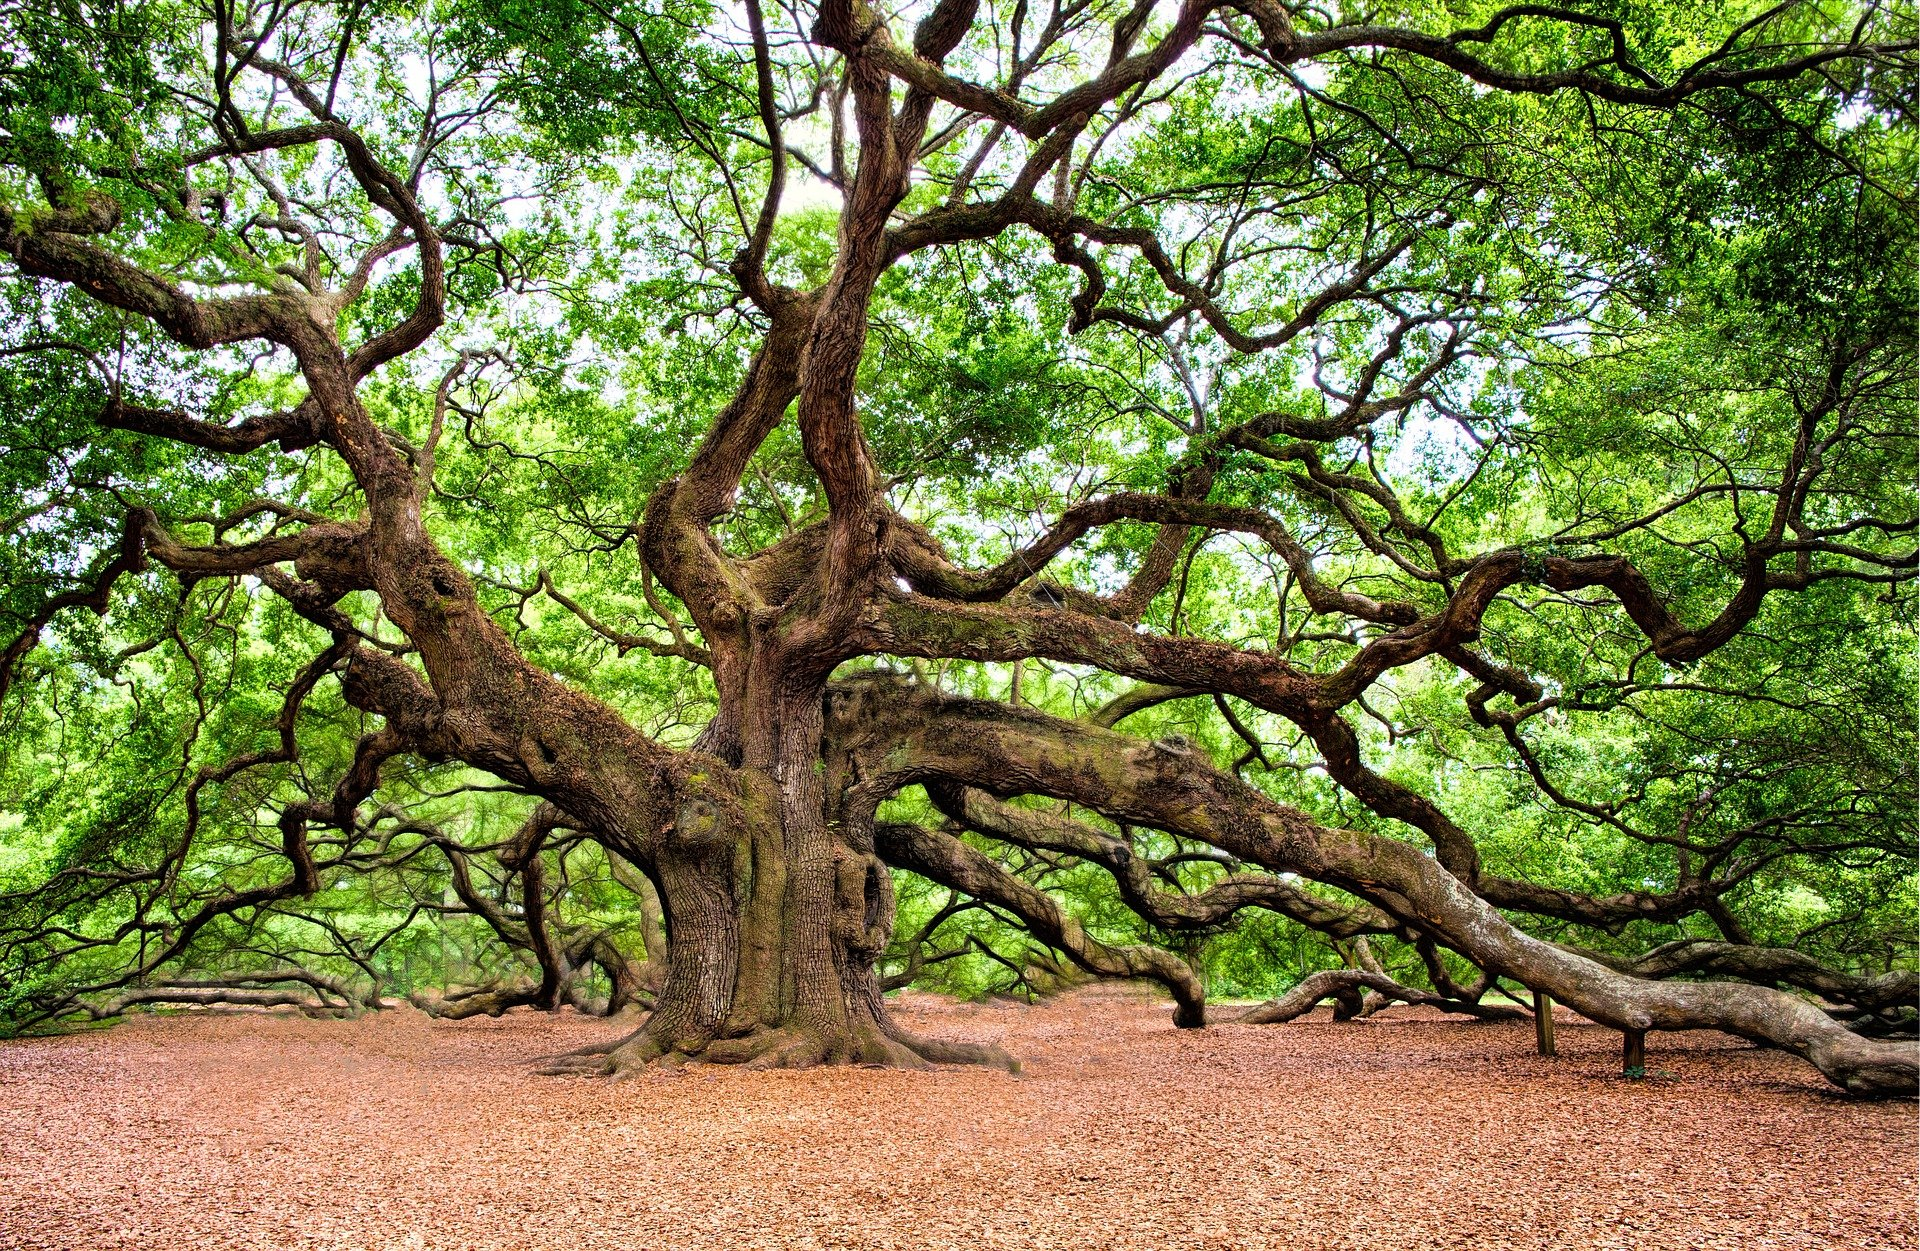 Oak trees are expected to have a lifespan of 1000 years, but this duration has been drastically reduced due to various external factors